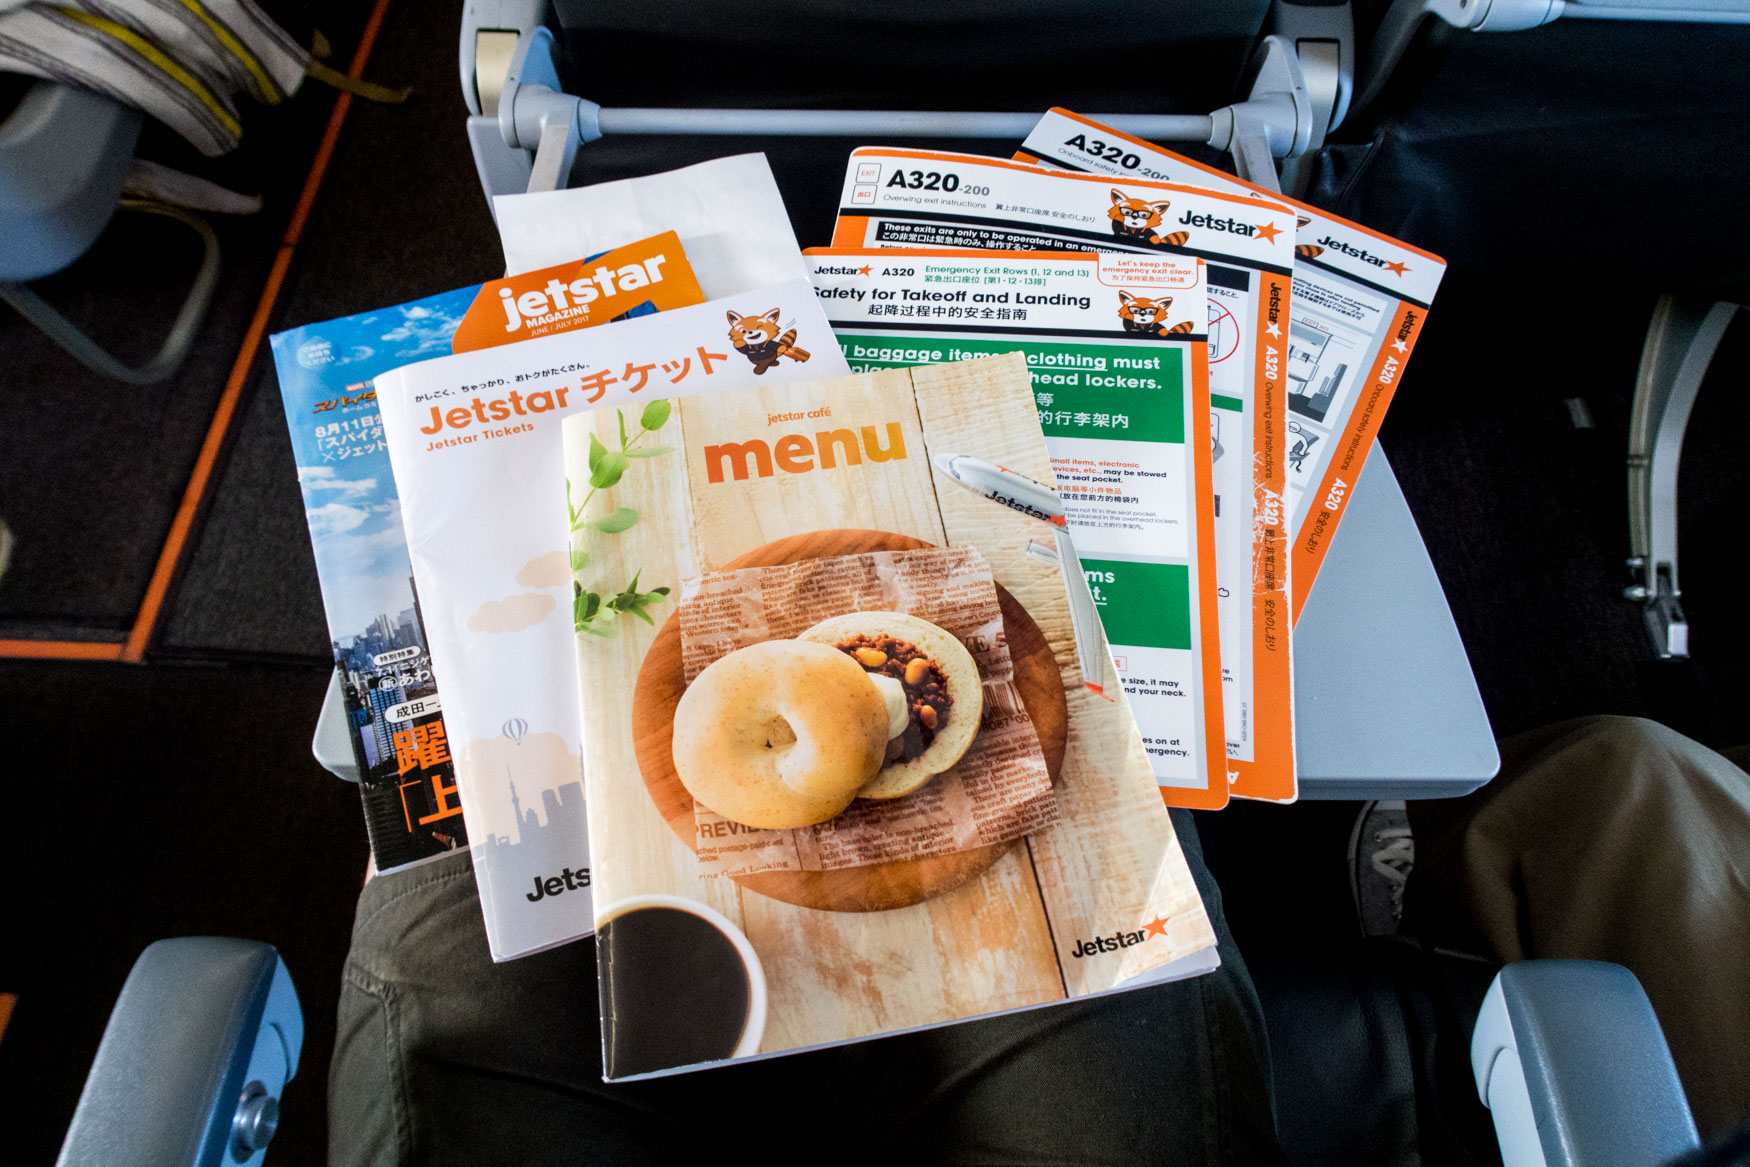 Jetstar In-Flight Magazine